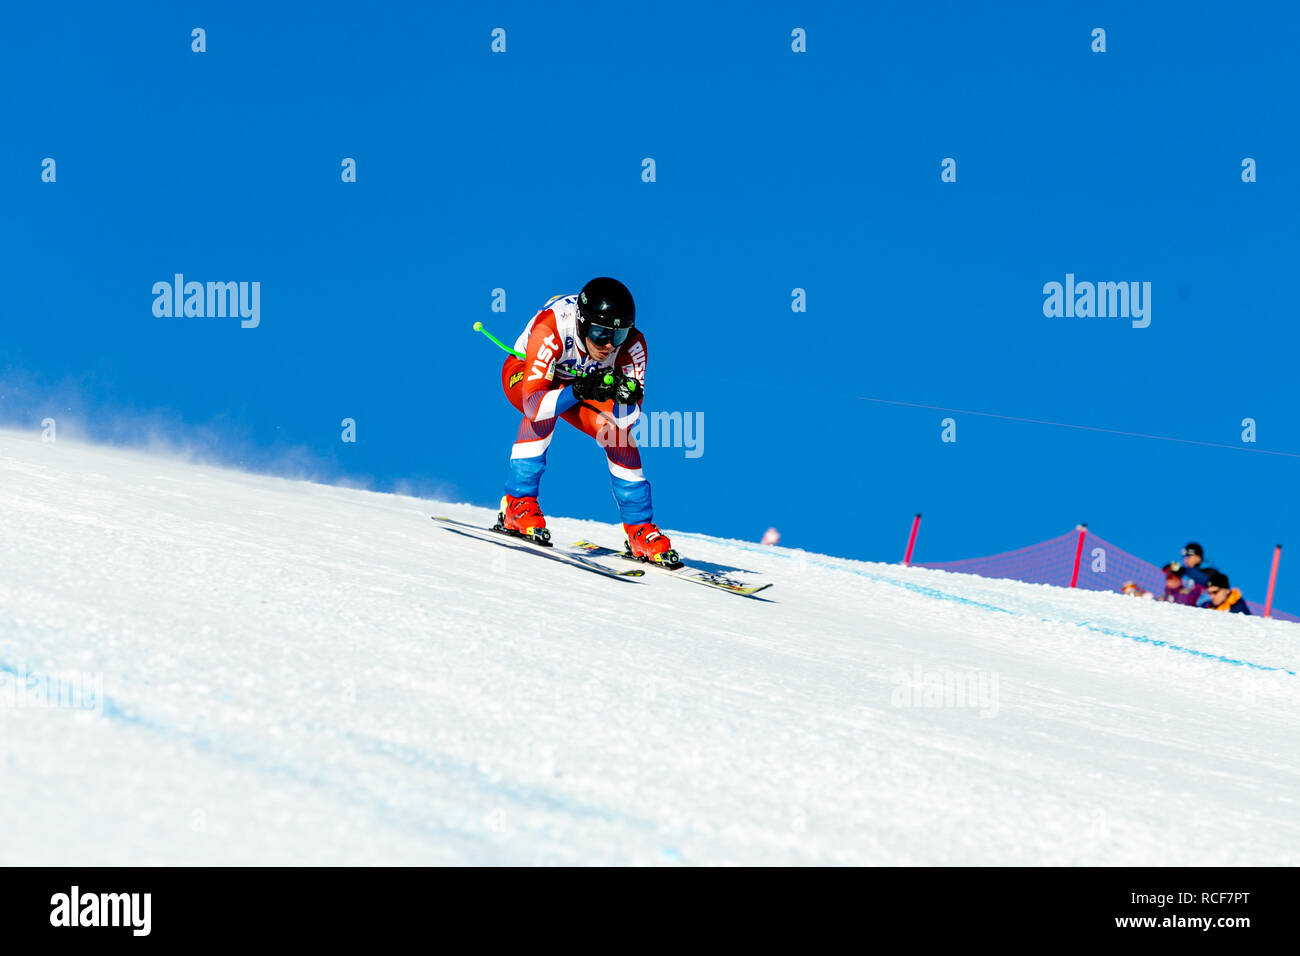 Magnitogorsk, Russia - December 19, 2018: men athlete racer in downhill skiing during National championship alpine skiing - Stock Image